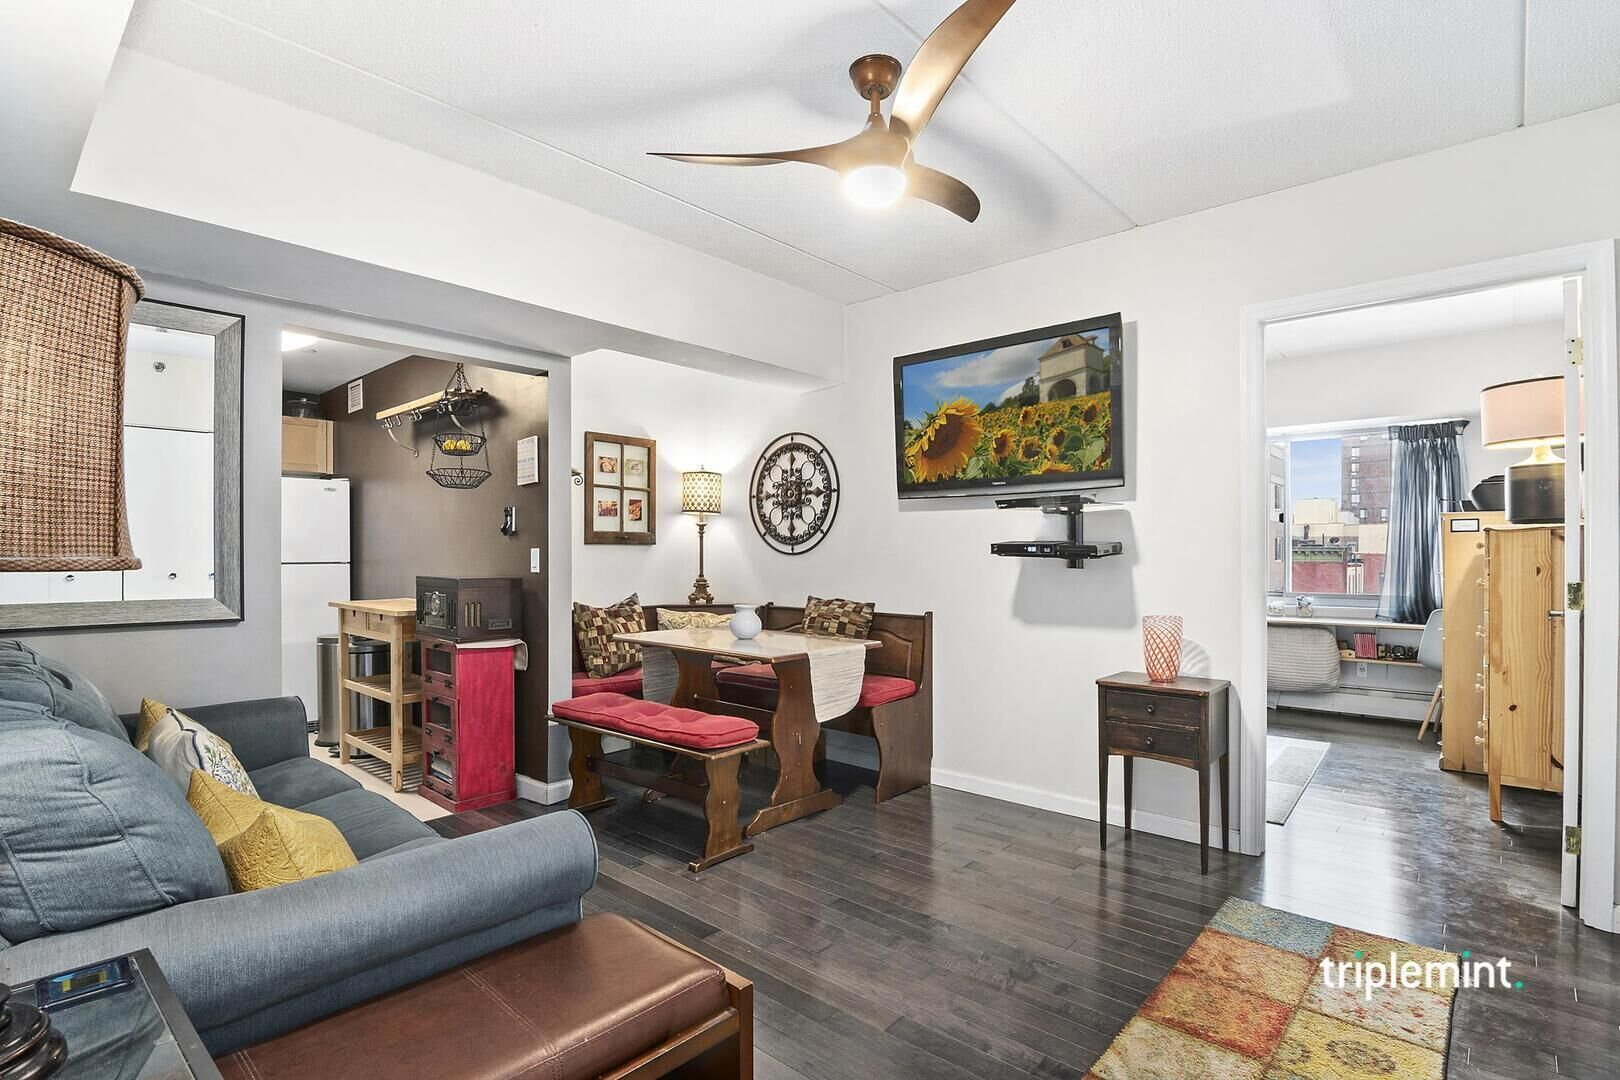 Apartment for sale at 300 West 145th Street, Apt 4-L